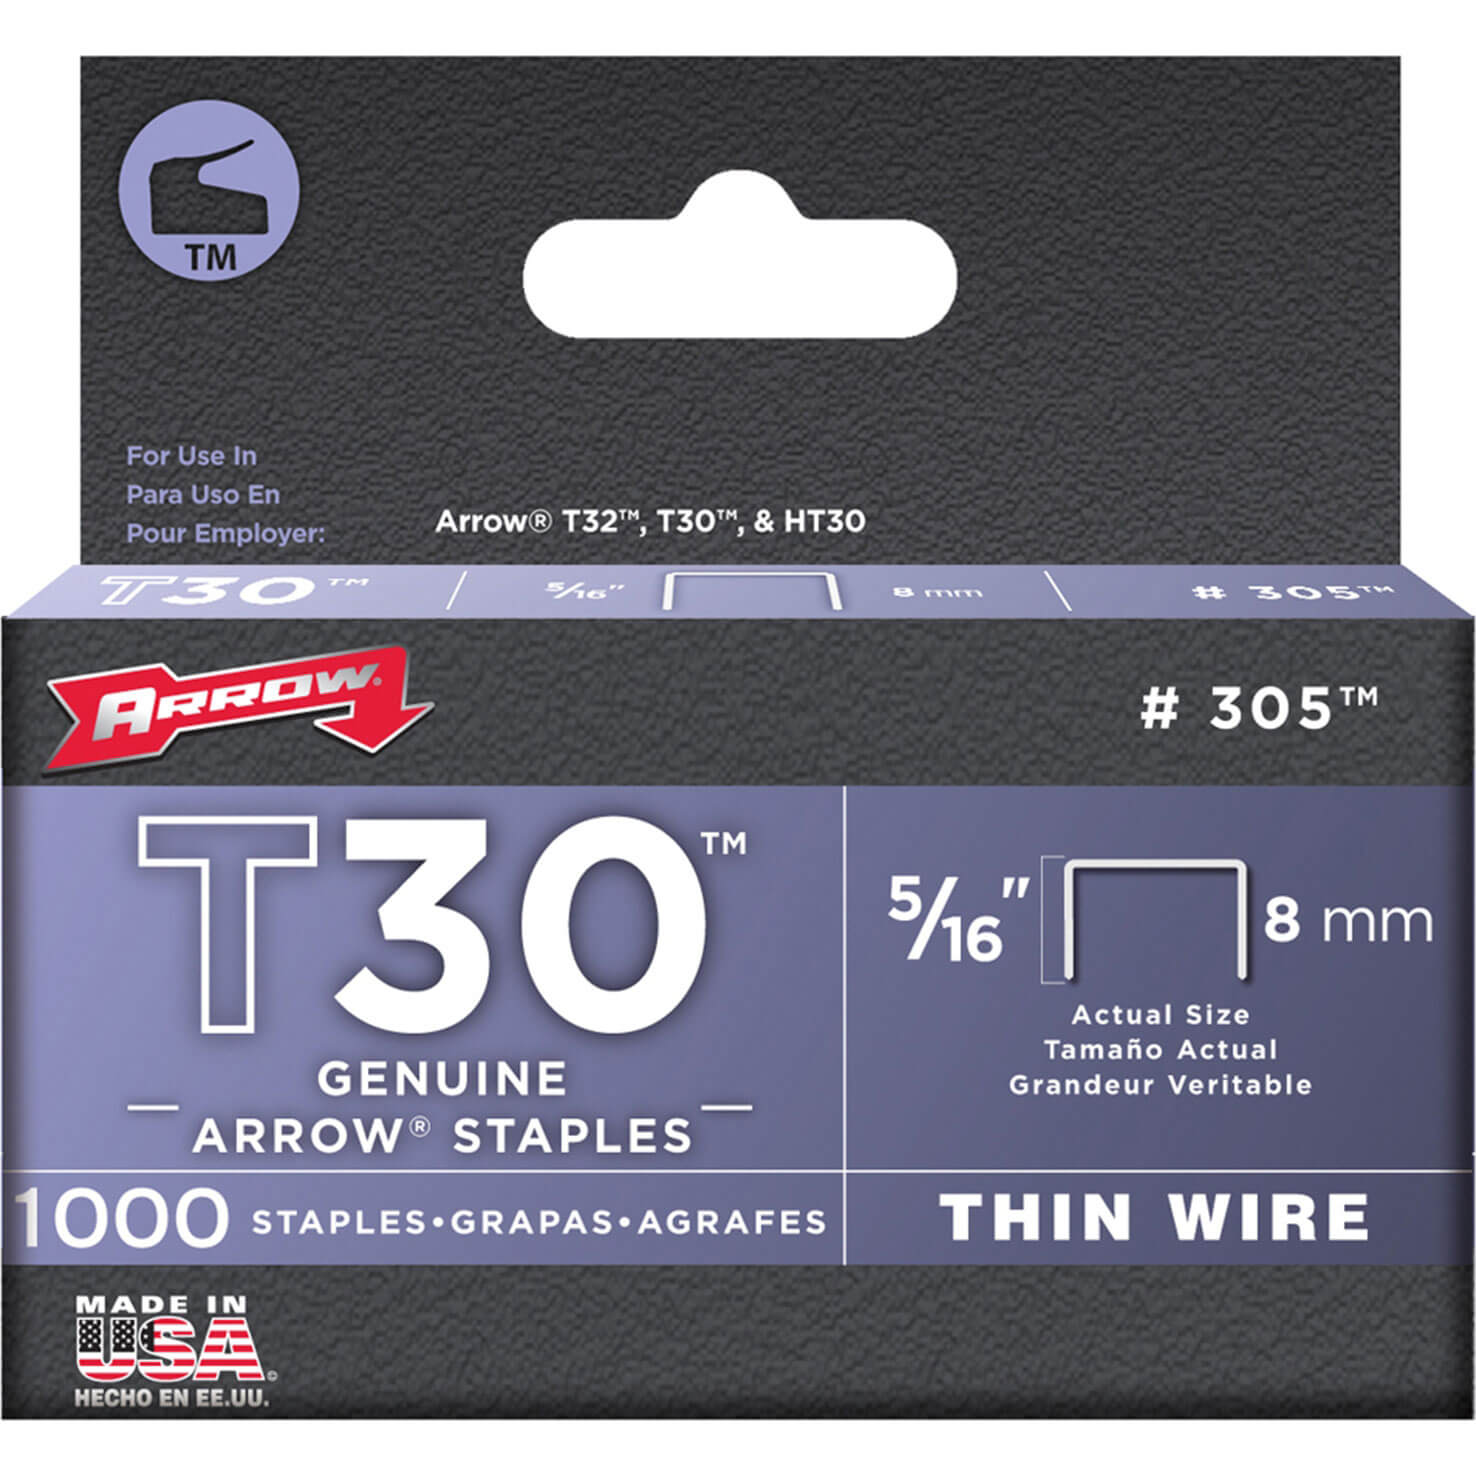 Arrow T30 Staples 8mm Pack of 5000